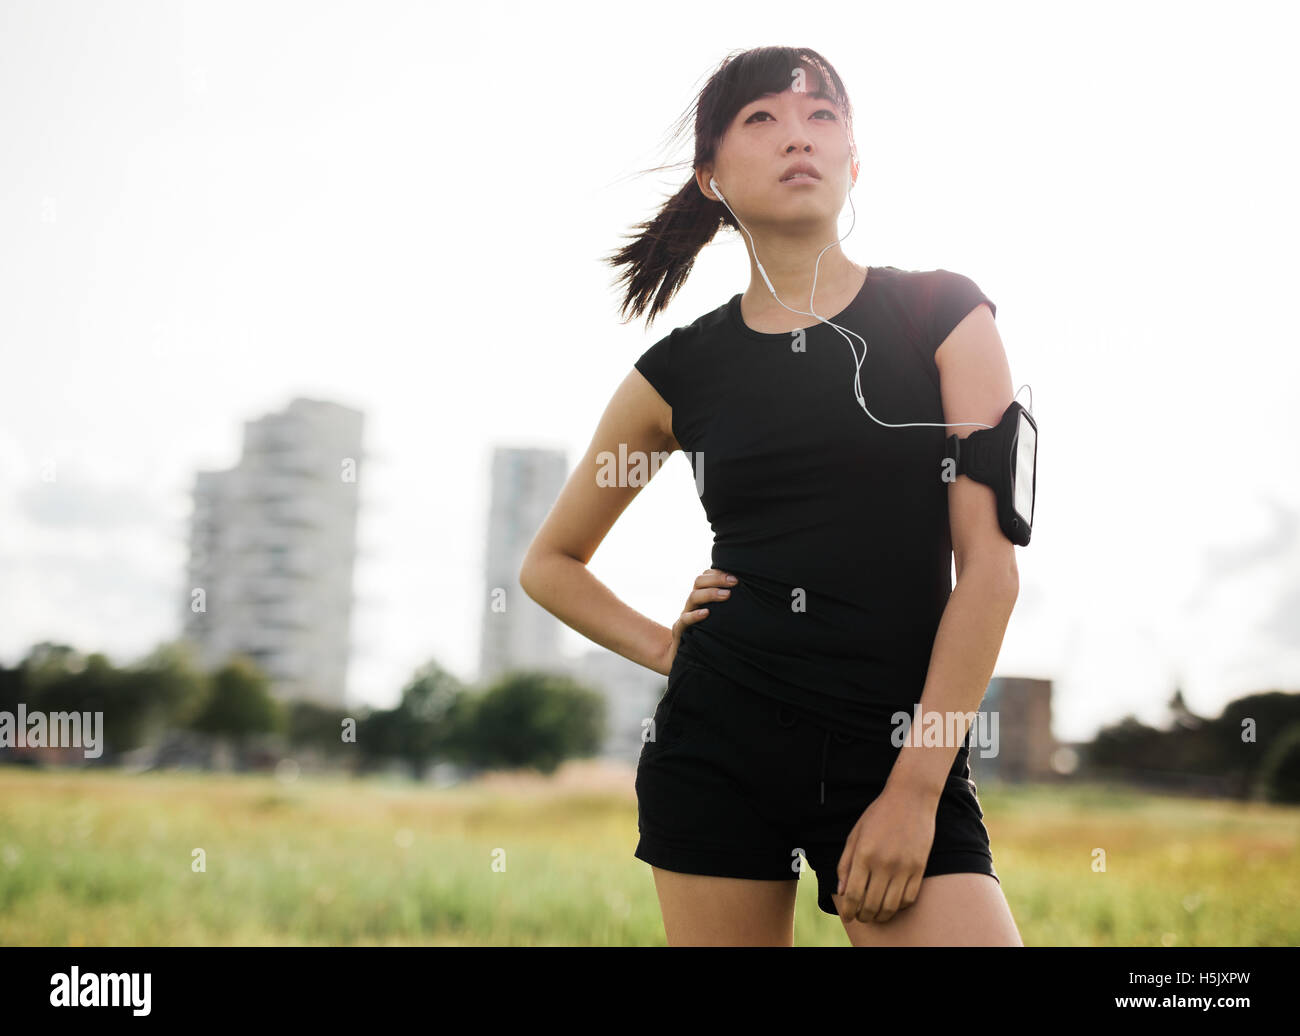 Outdoor shot of female runner standing in urban park. Chinese woman in sportswear with earphones listening to music - Stock Image